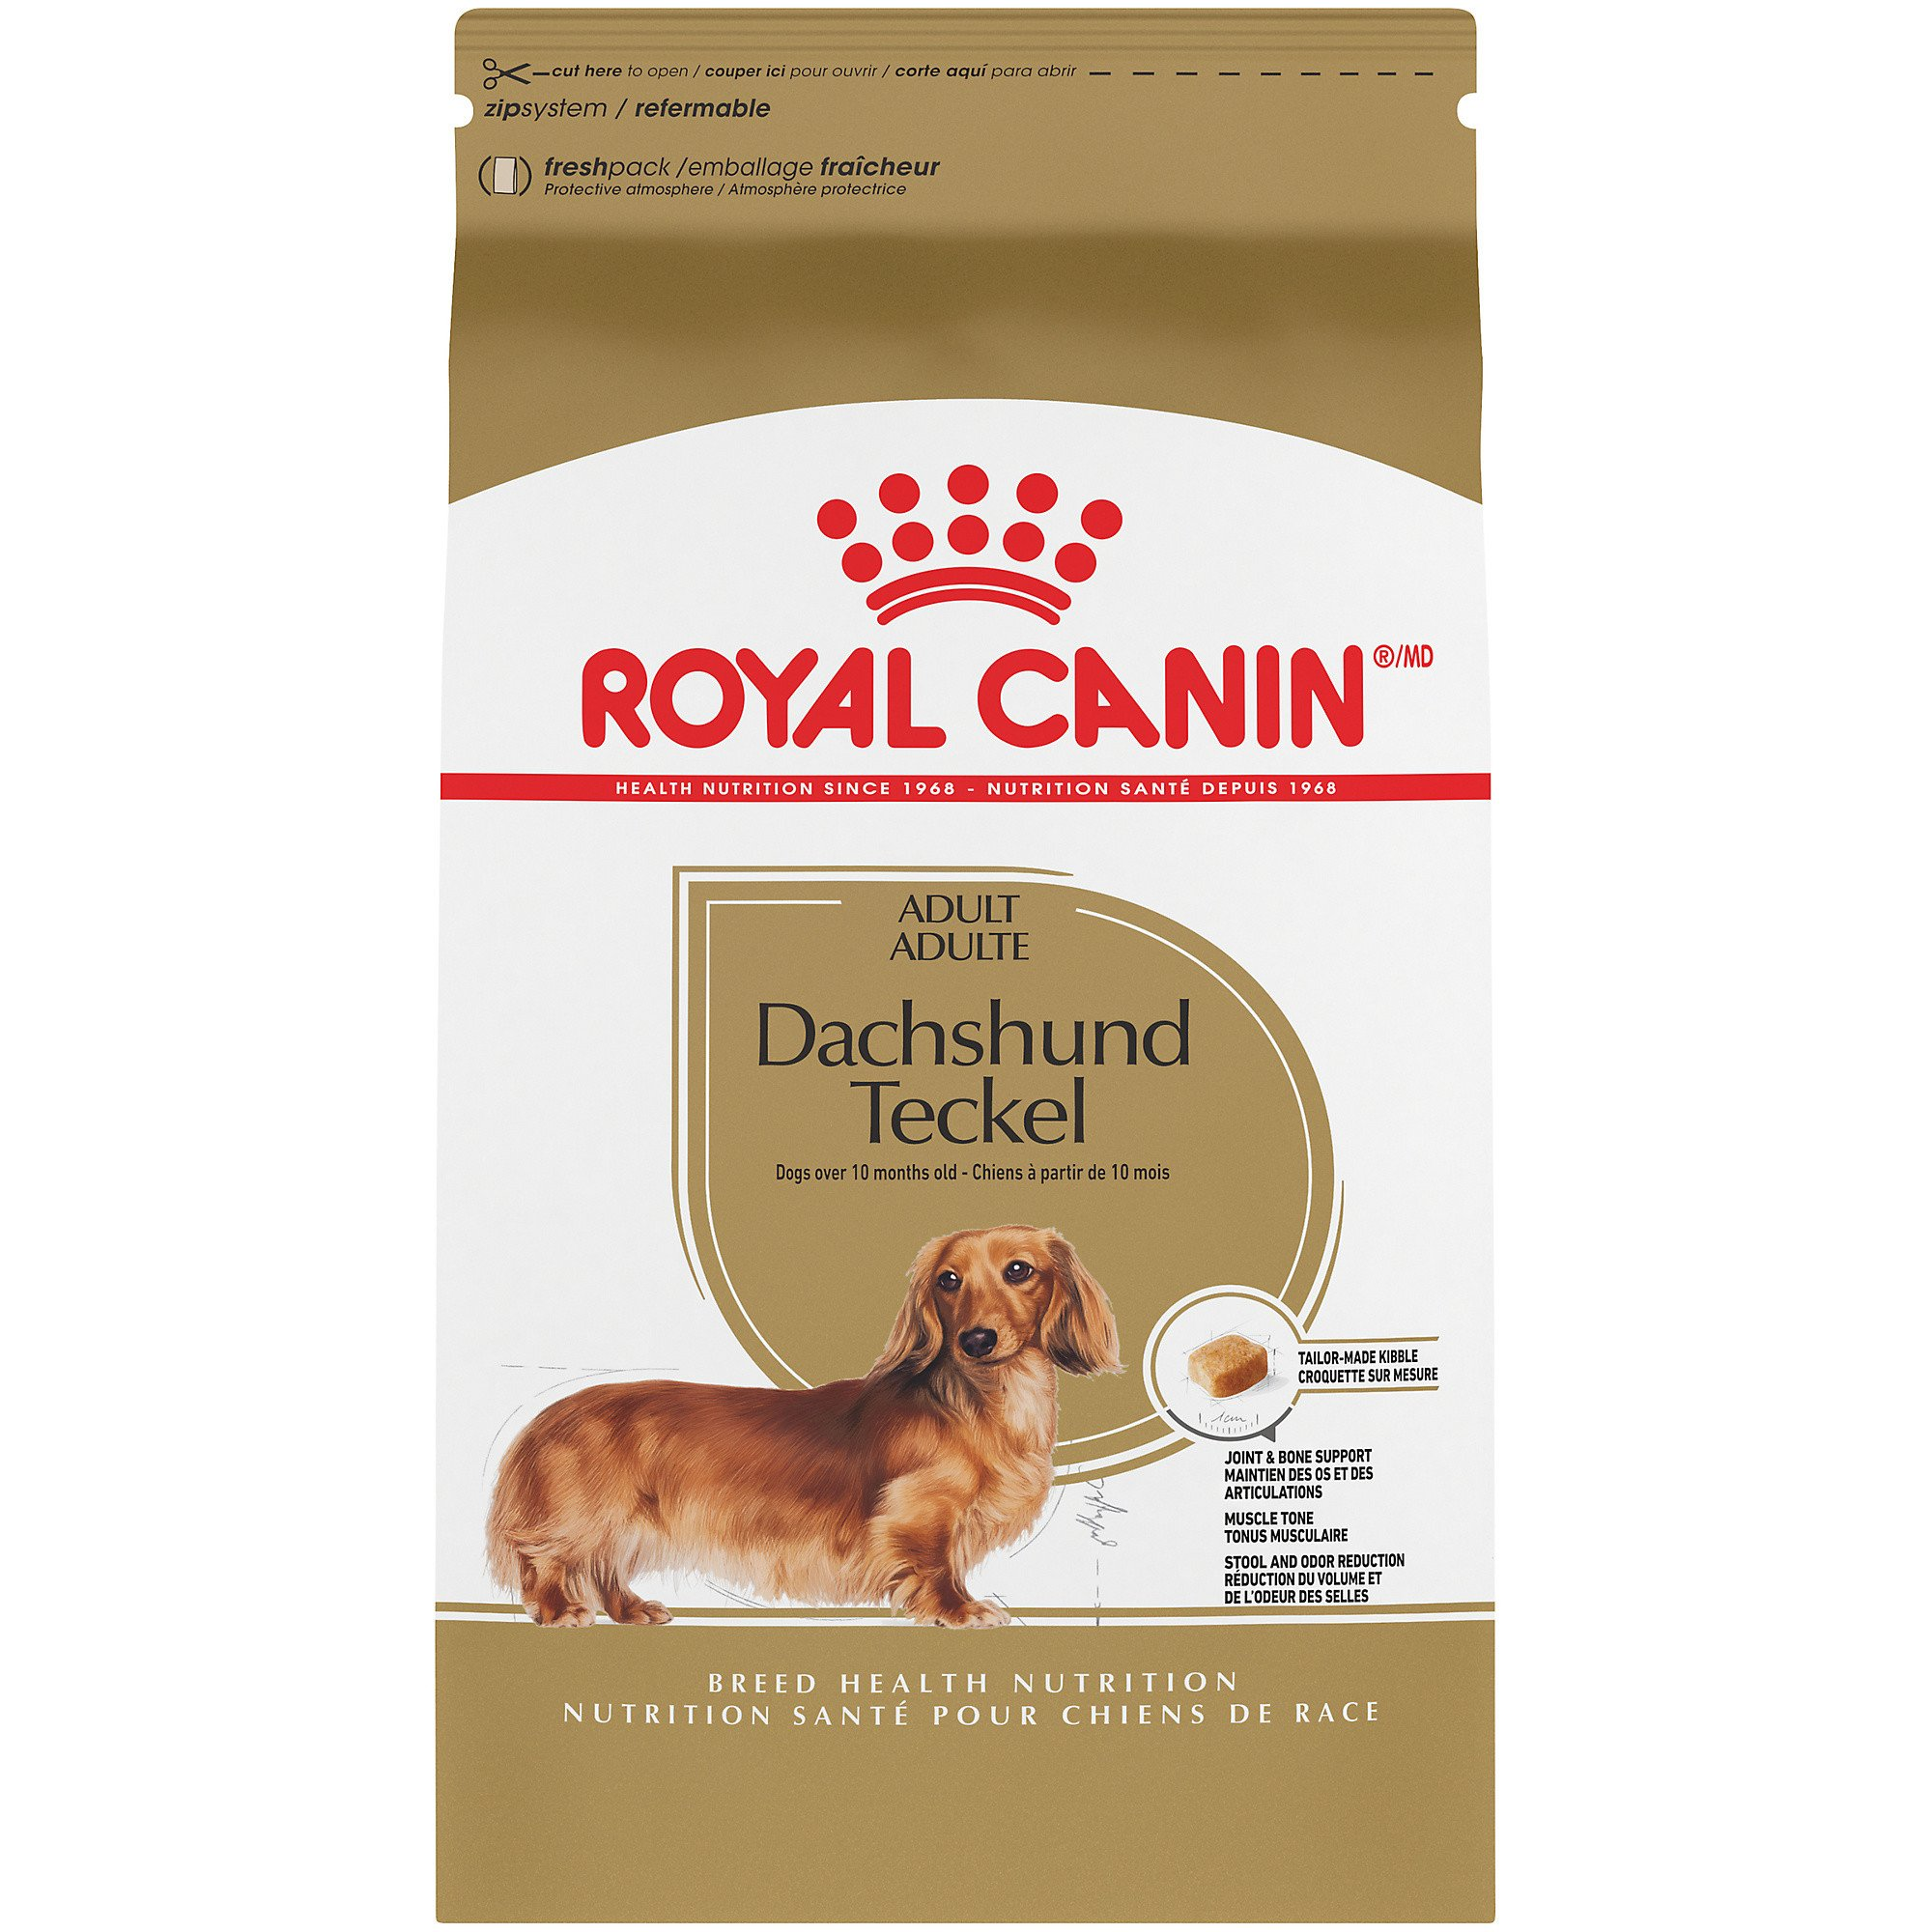 image regarding Royal Canin Printable Coupon referred to as Royal canin dachshund coupon : Maximuscle specials discounts